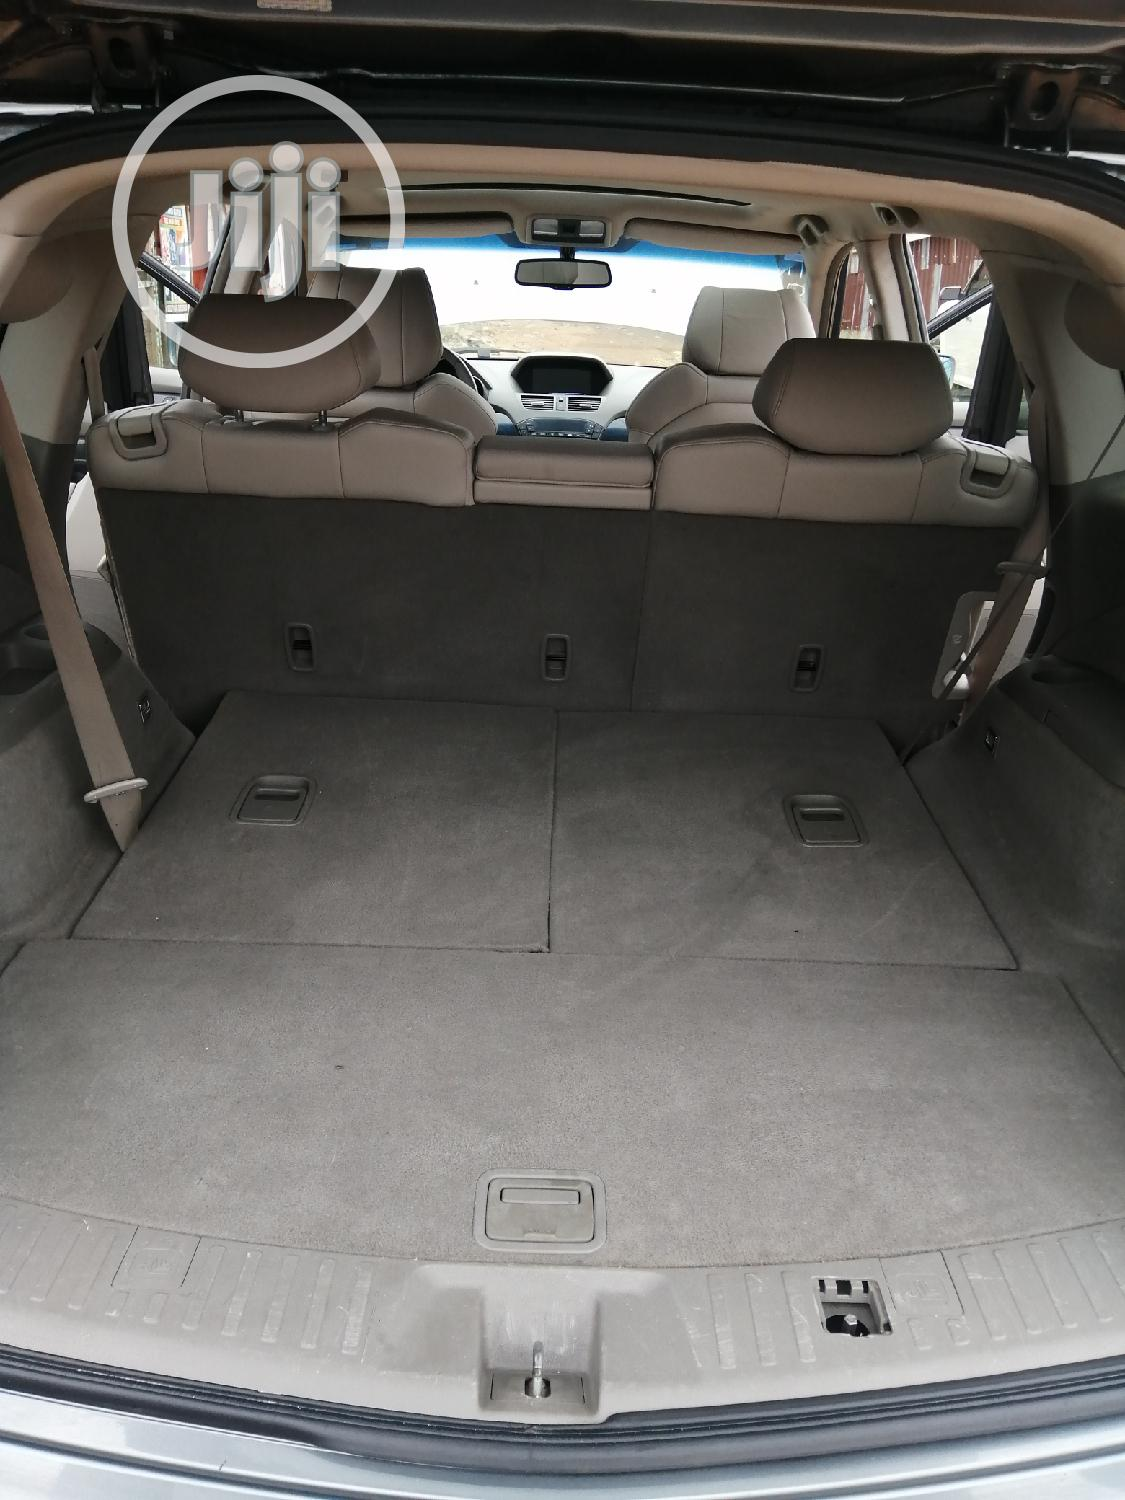 Acura MDX 2008 SUV 4dr AWD (3.7 6cyl 5A) Gray | Cars for sale in Ojo, Lagos State, Nigeria